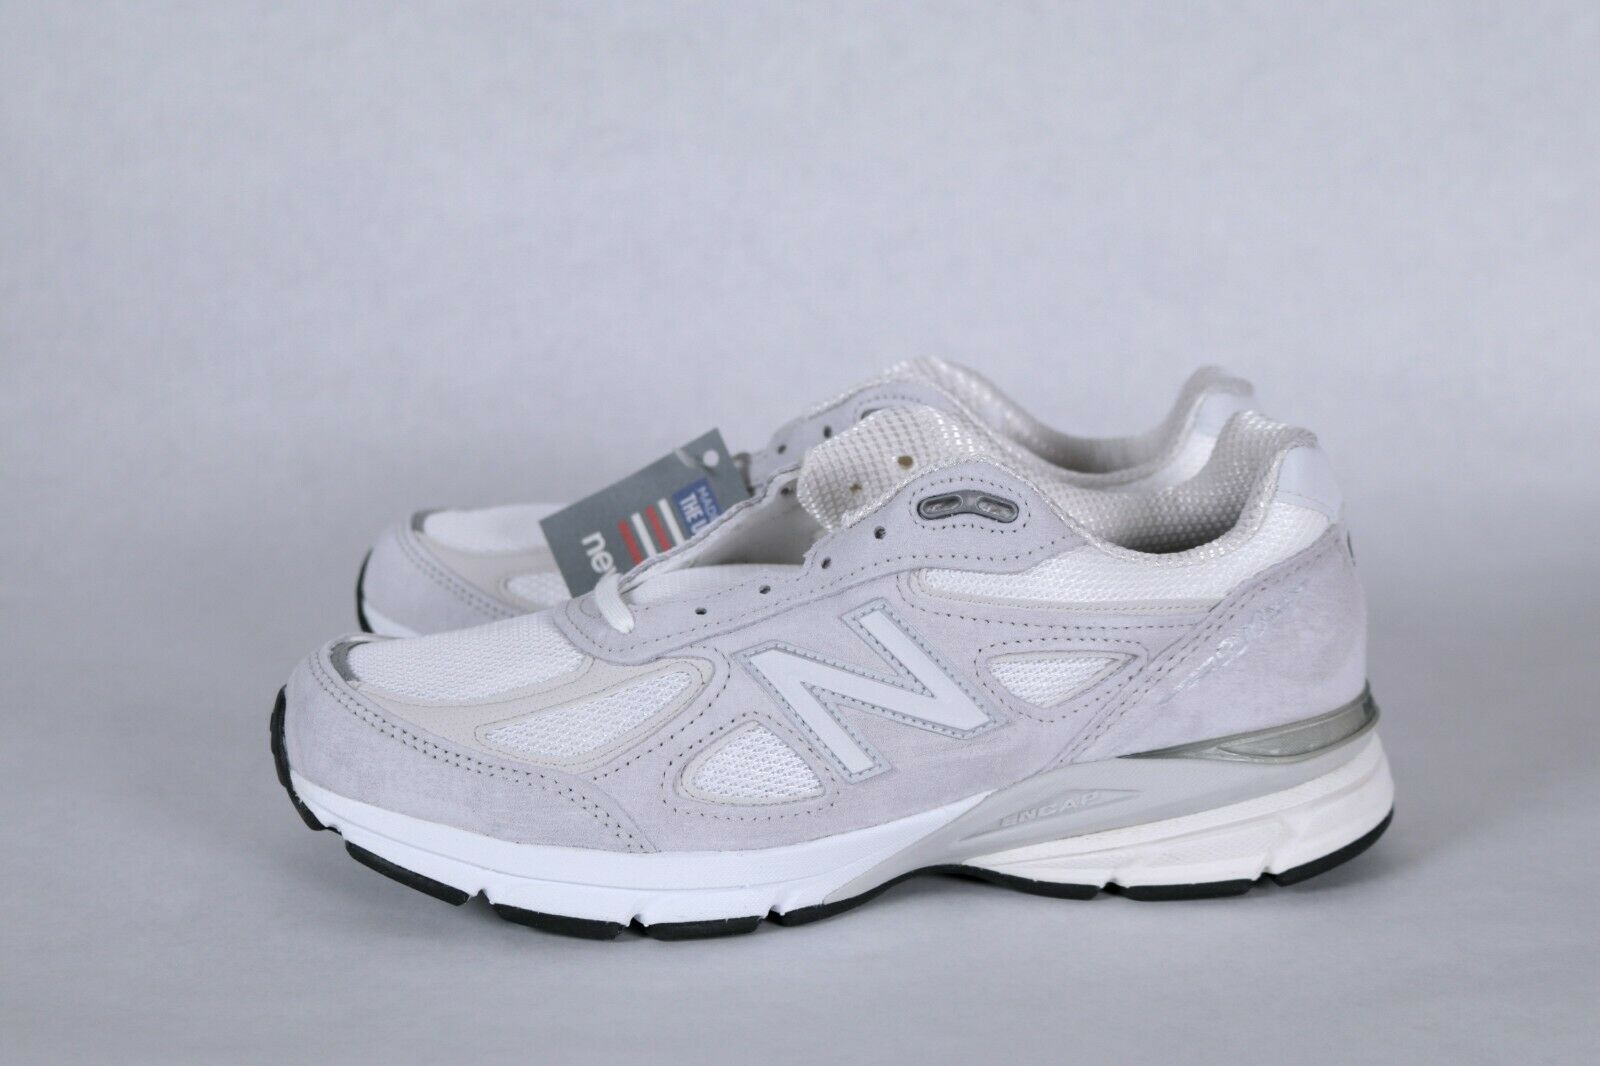 Details about NEW BALANCE 990 V4 ARCTIC FOX GRAYWHITE MADE